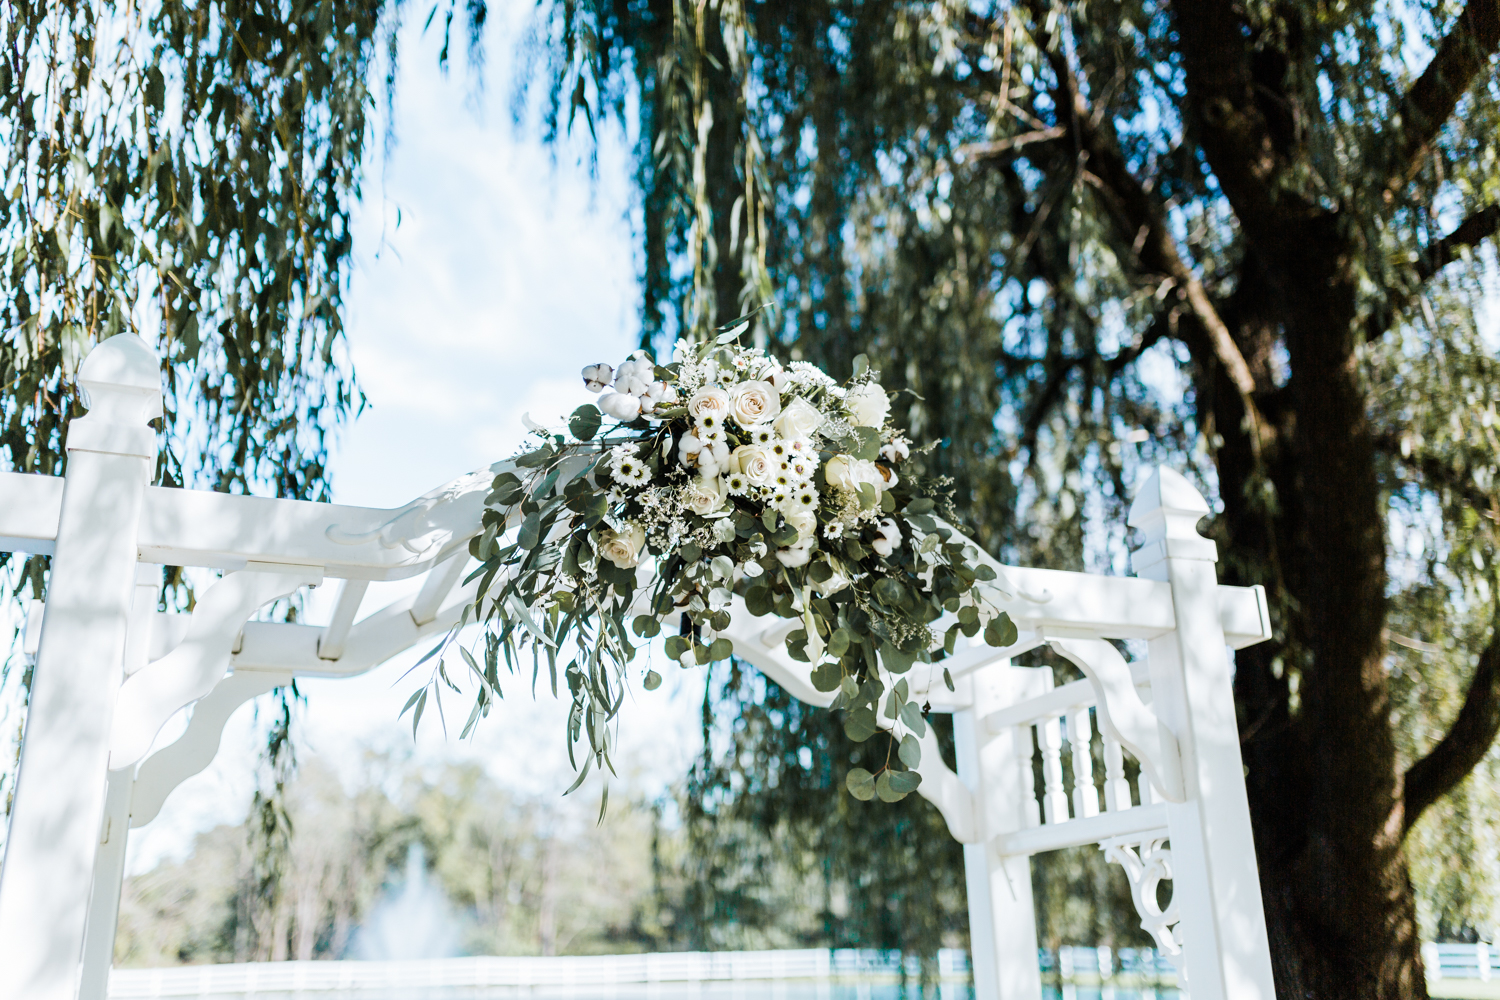 ceremony flowers at Pond View Farm wedding - Maryland wedding photo and video